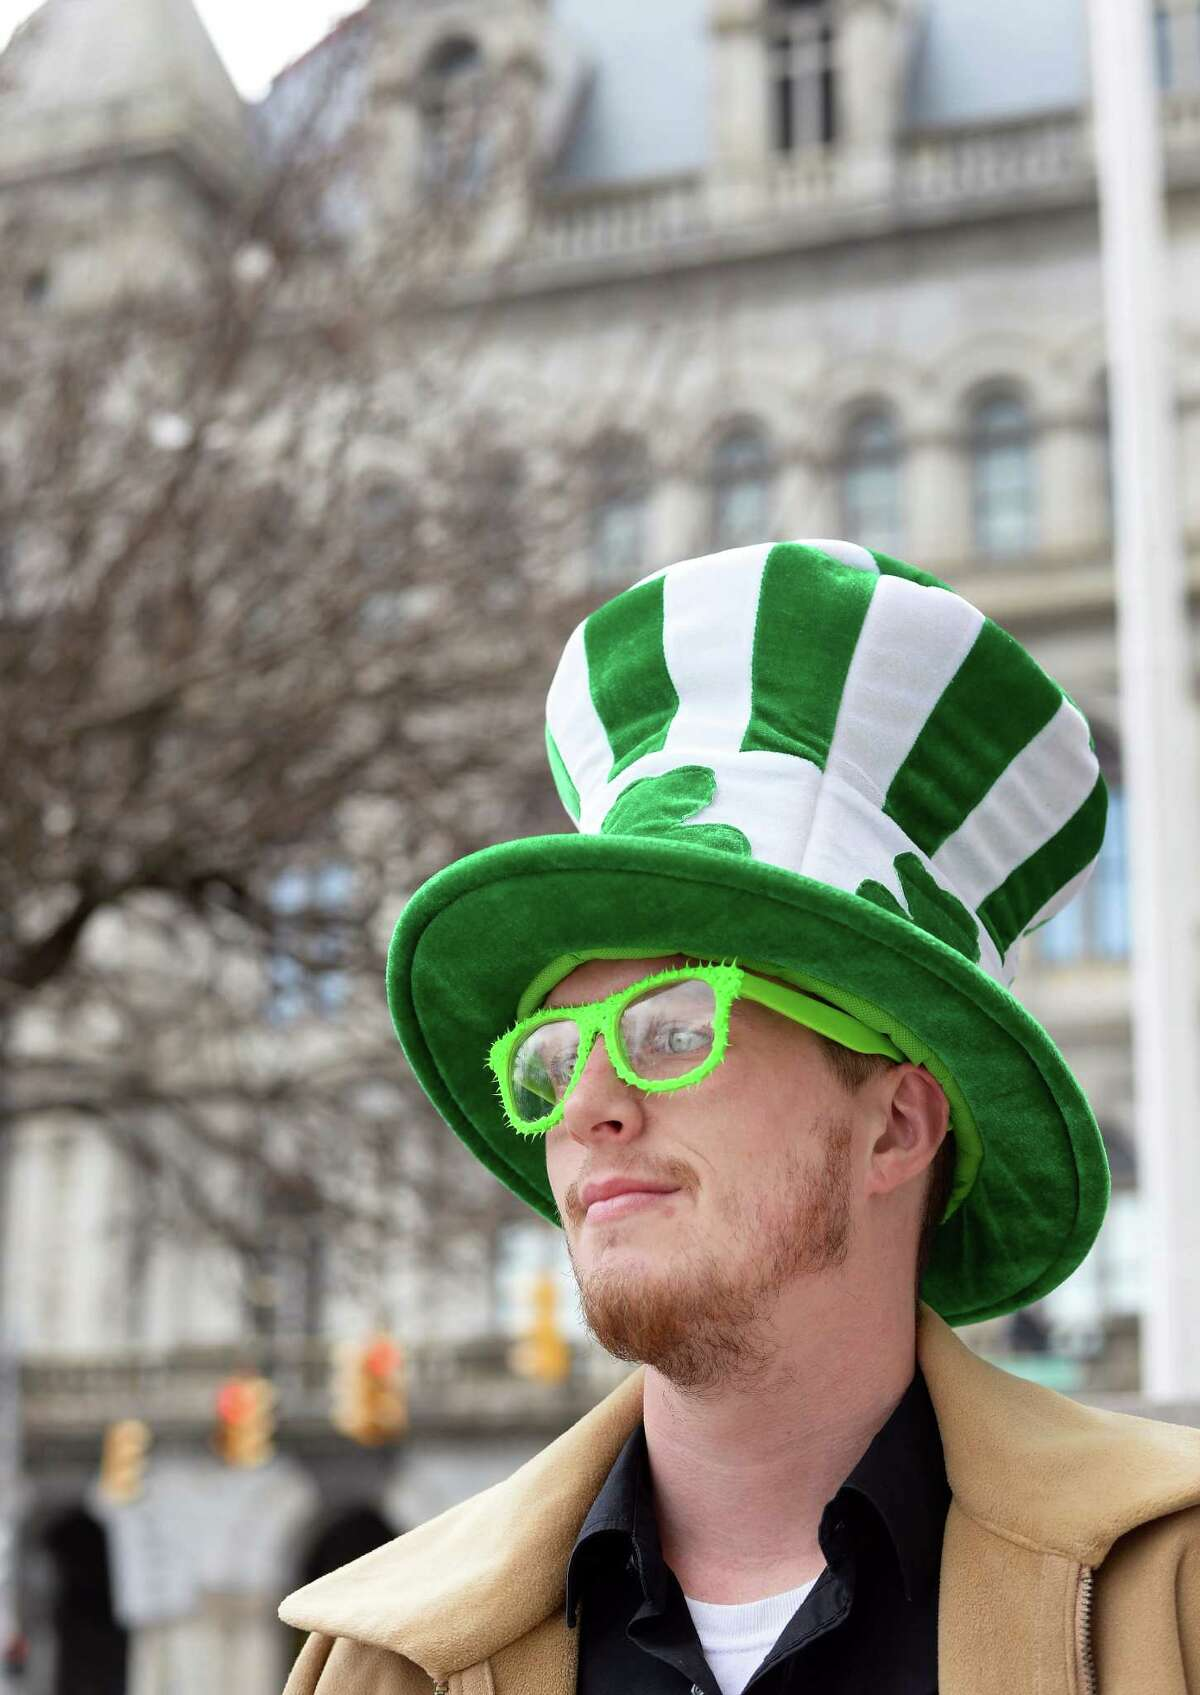 Jason Cronk of Albany celebrates St. Patrick's Day with a shamrock hat and green glasses outside the Capitol Tuesday March 17, 2015 in Albany, NY. (John Carl D'Annibale / Times Union)